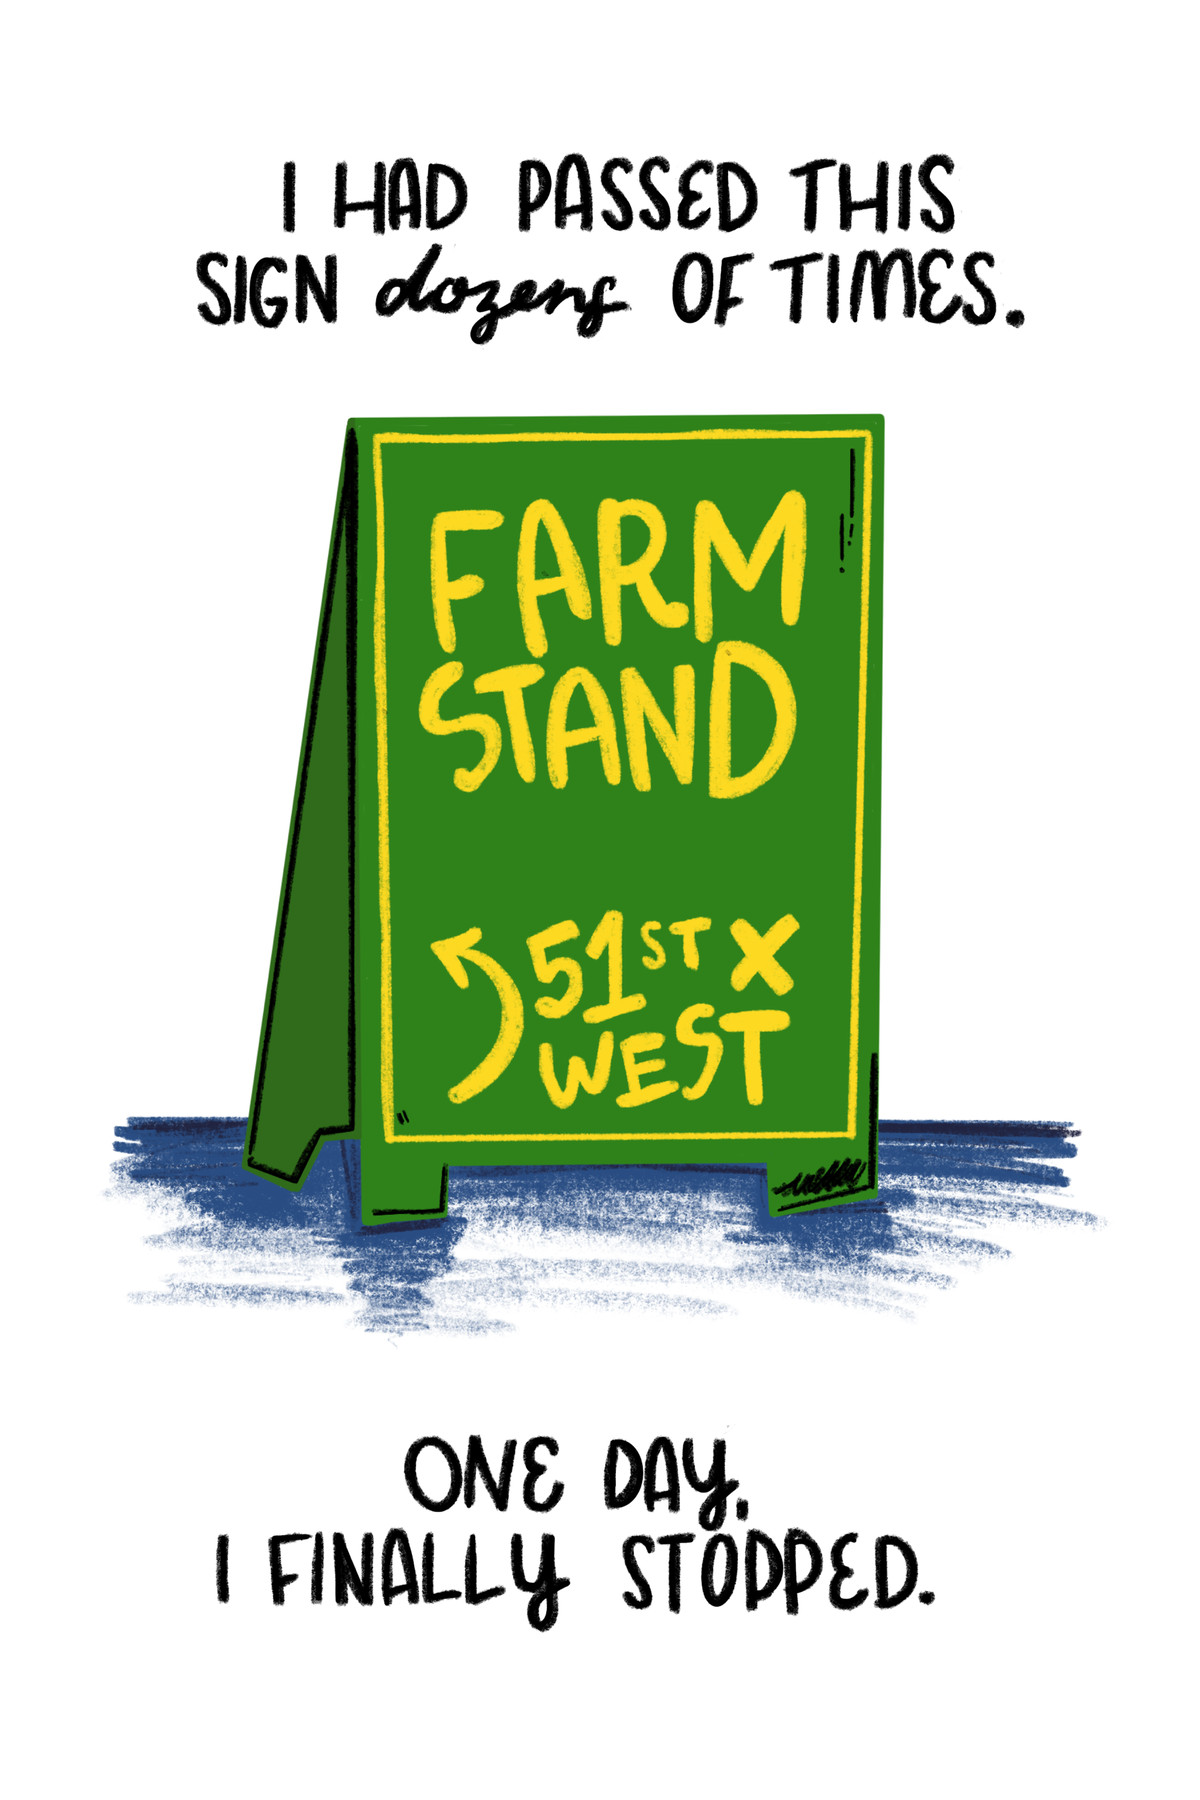 """""""I had passed this sign dozens of times."""" [On a green sign: """"Farm Stand: 51st x West.""""] """"One day, I finally stopped."""""""